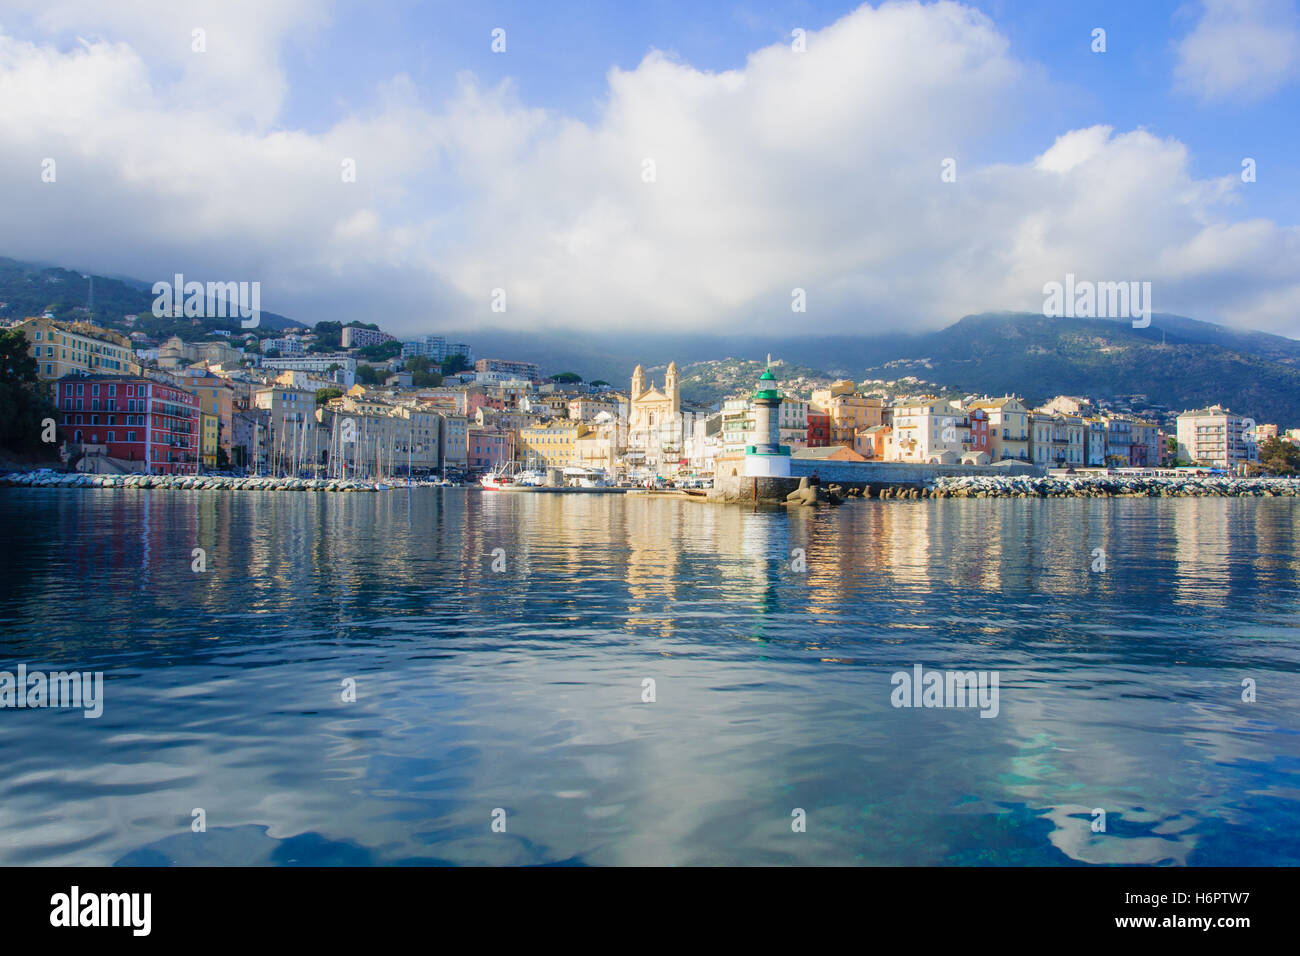 Cafe in the vieux port terra vecchia bastia corsica france stock - Stock Photo The Old Port The Vieux Port In Bastia Corsica France